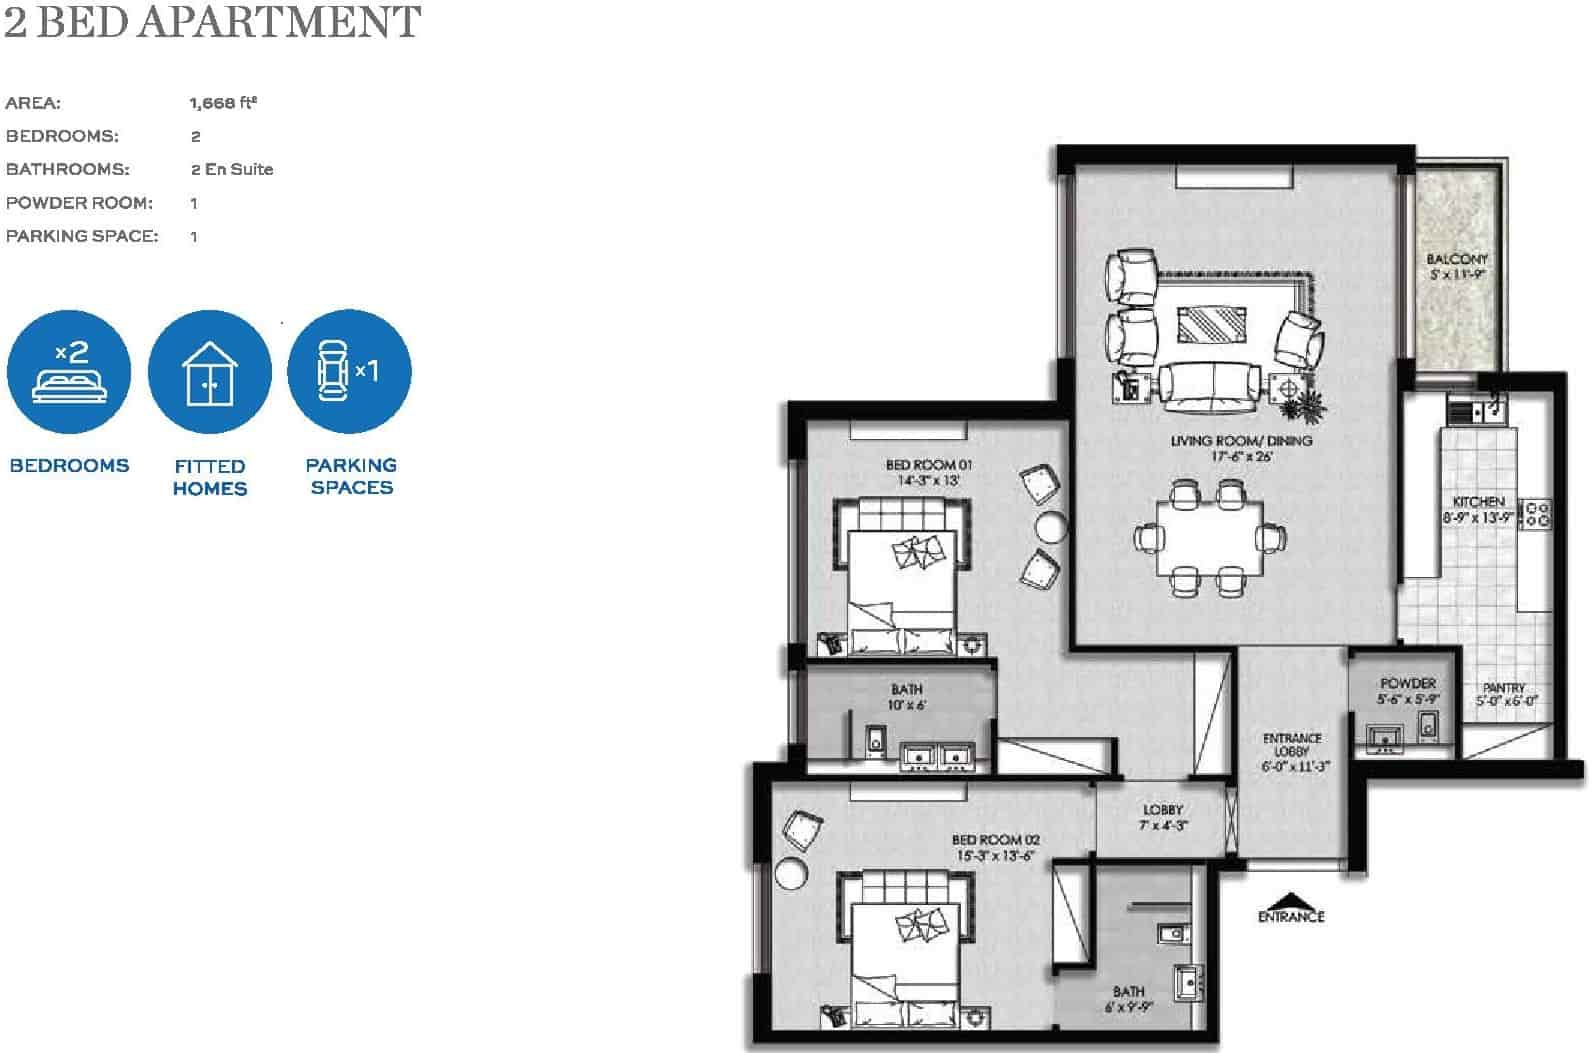 The Heights Eighteen 2 Bed Apartment Layout Plan